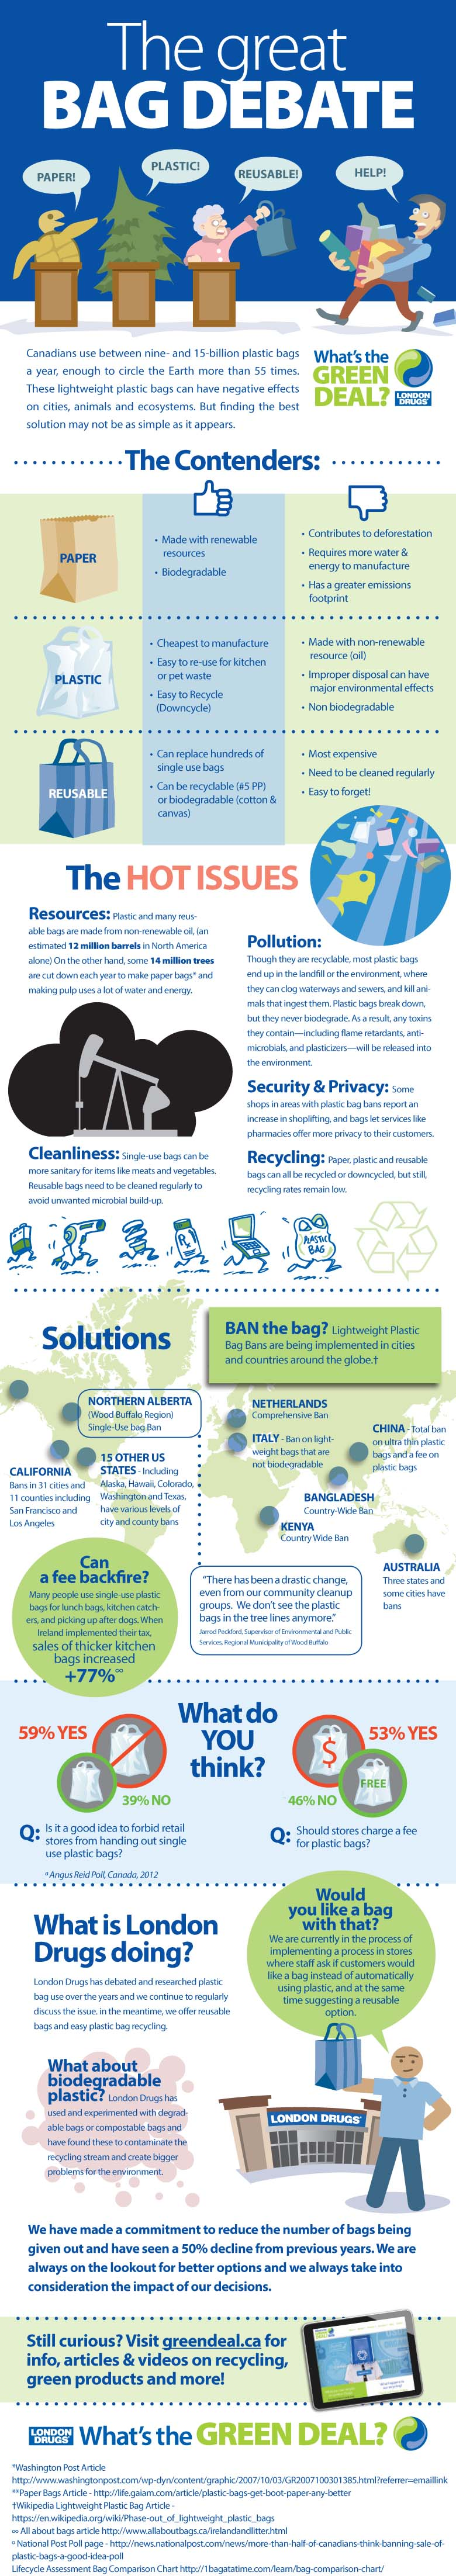 London Drugs Shopping Bag Debate Graphic